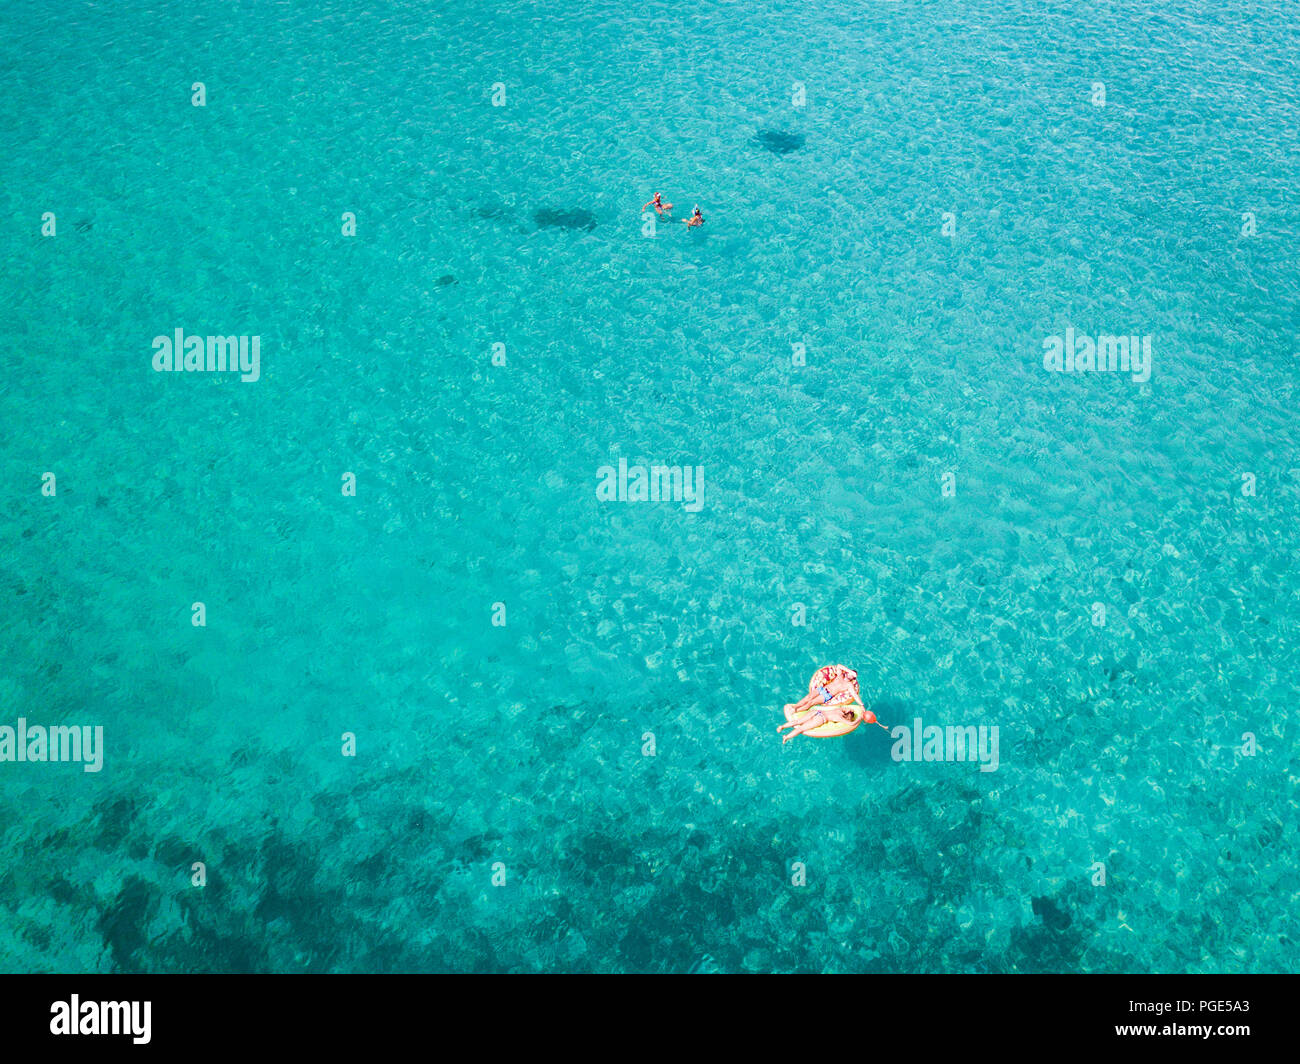 Aerial view of two people relaxed on an inflatable mat floating on a beautiful turquoise sea. Cala Brandinchi, Sardinia, Italy. Stock Photo